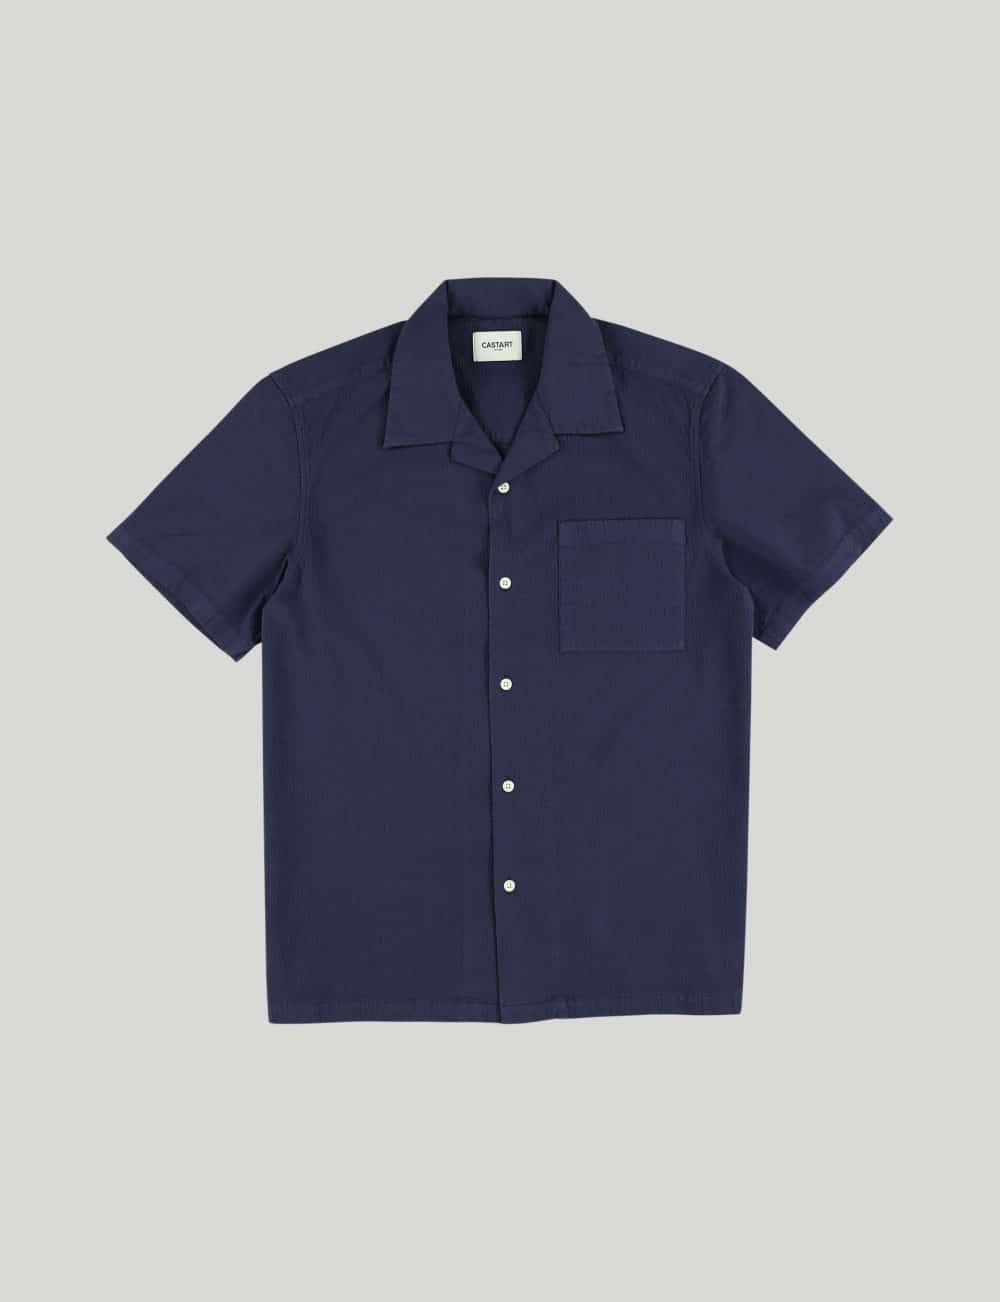 Castart - Tiger Tooth SL Shirt - Navy Blue